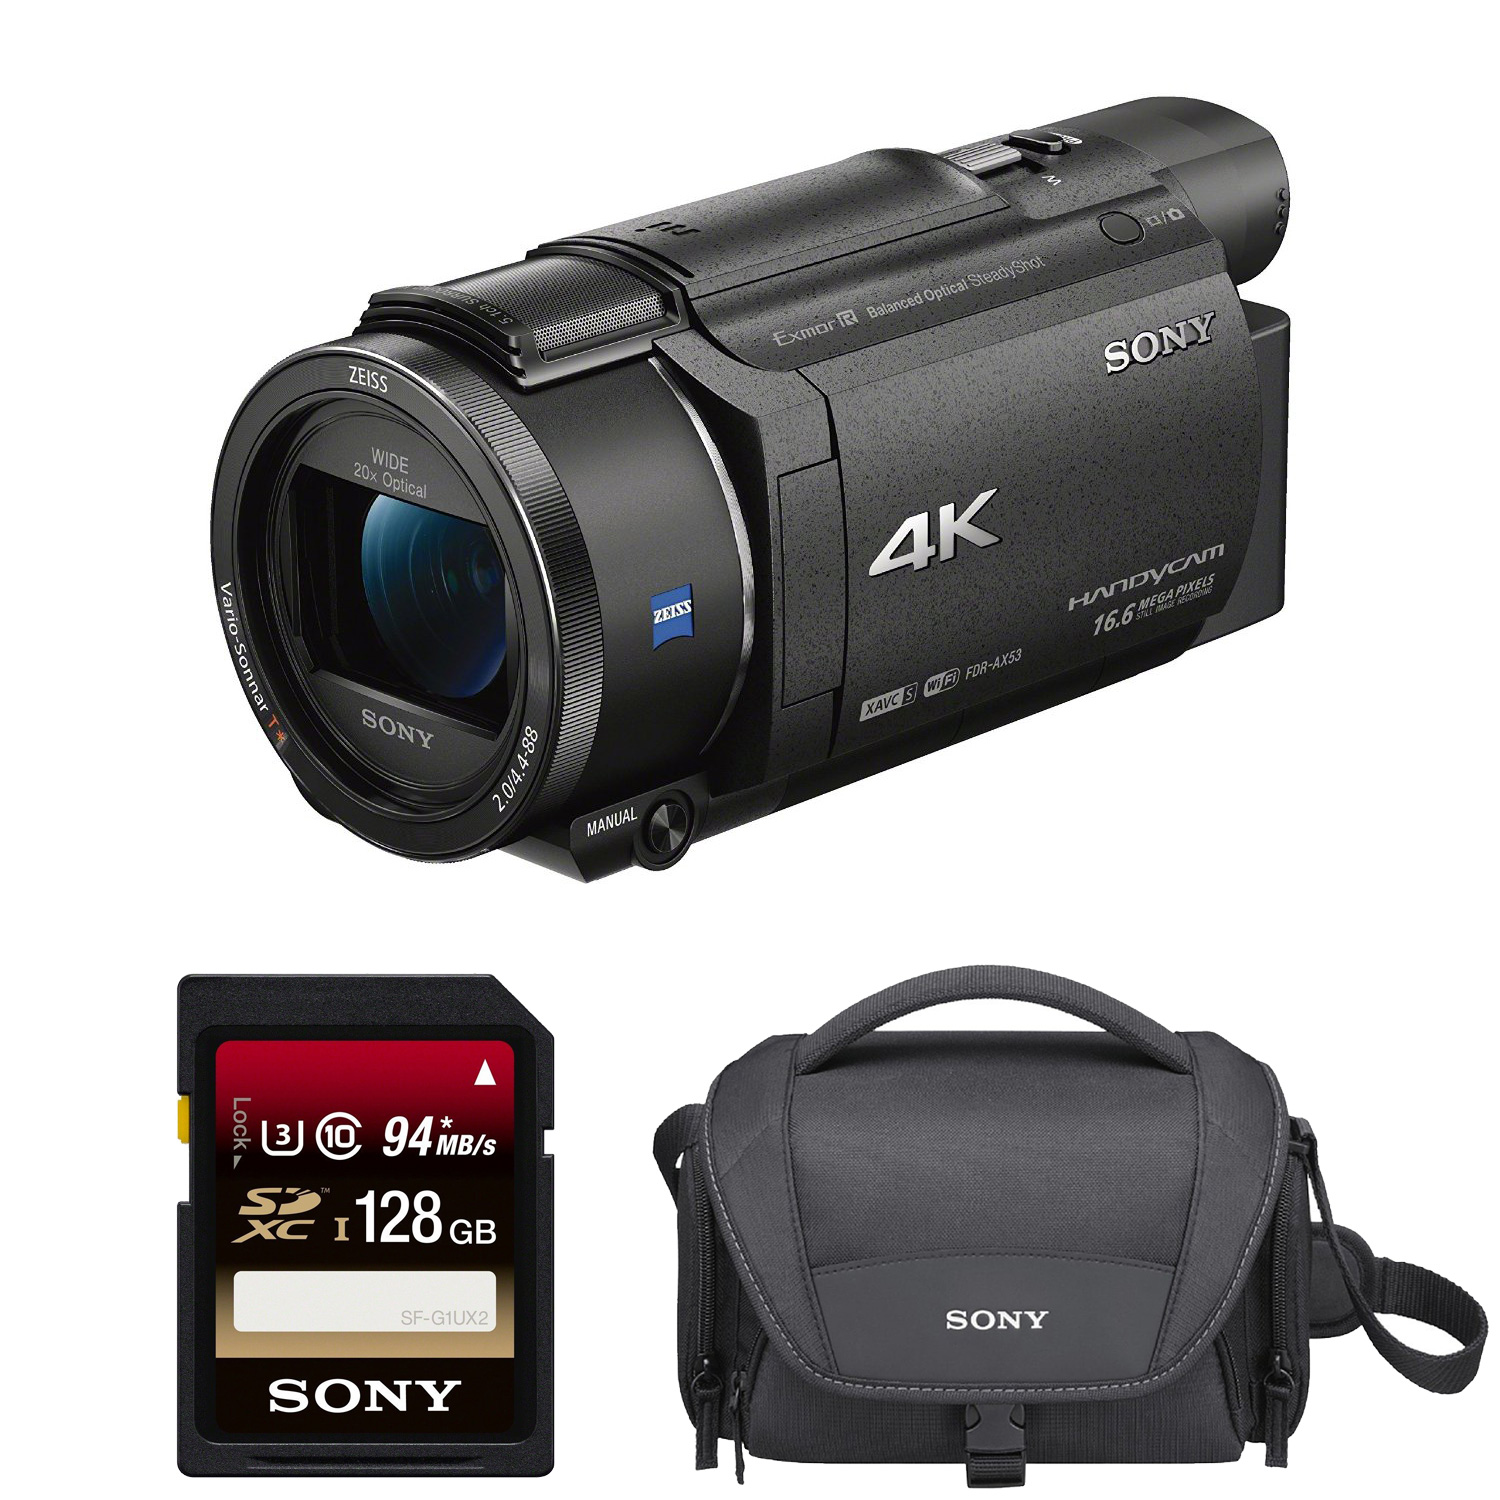 Sony FDR-AX53 UHD 4K Camcorder (Black) + 128GB Memory Card + Carrying Case by Sony